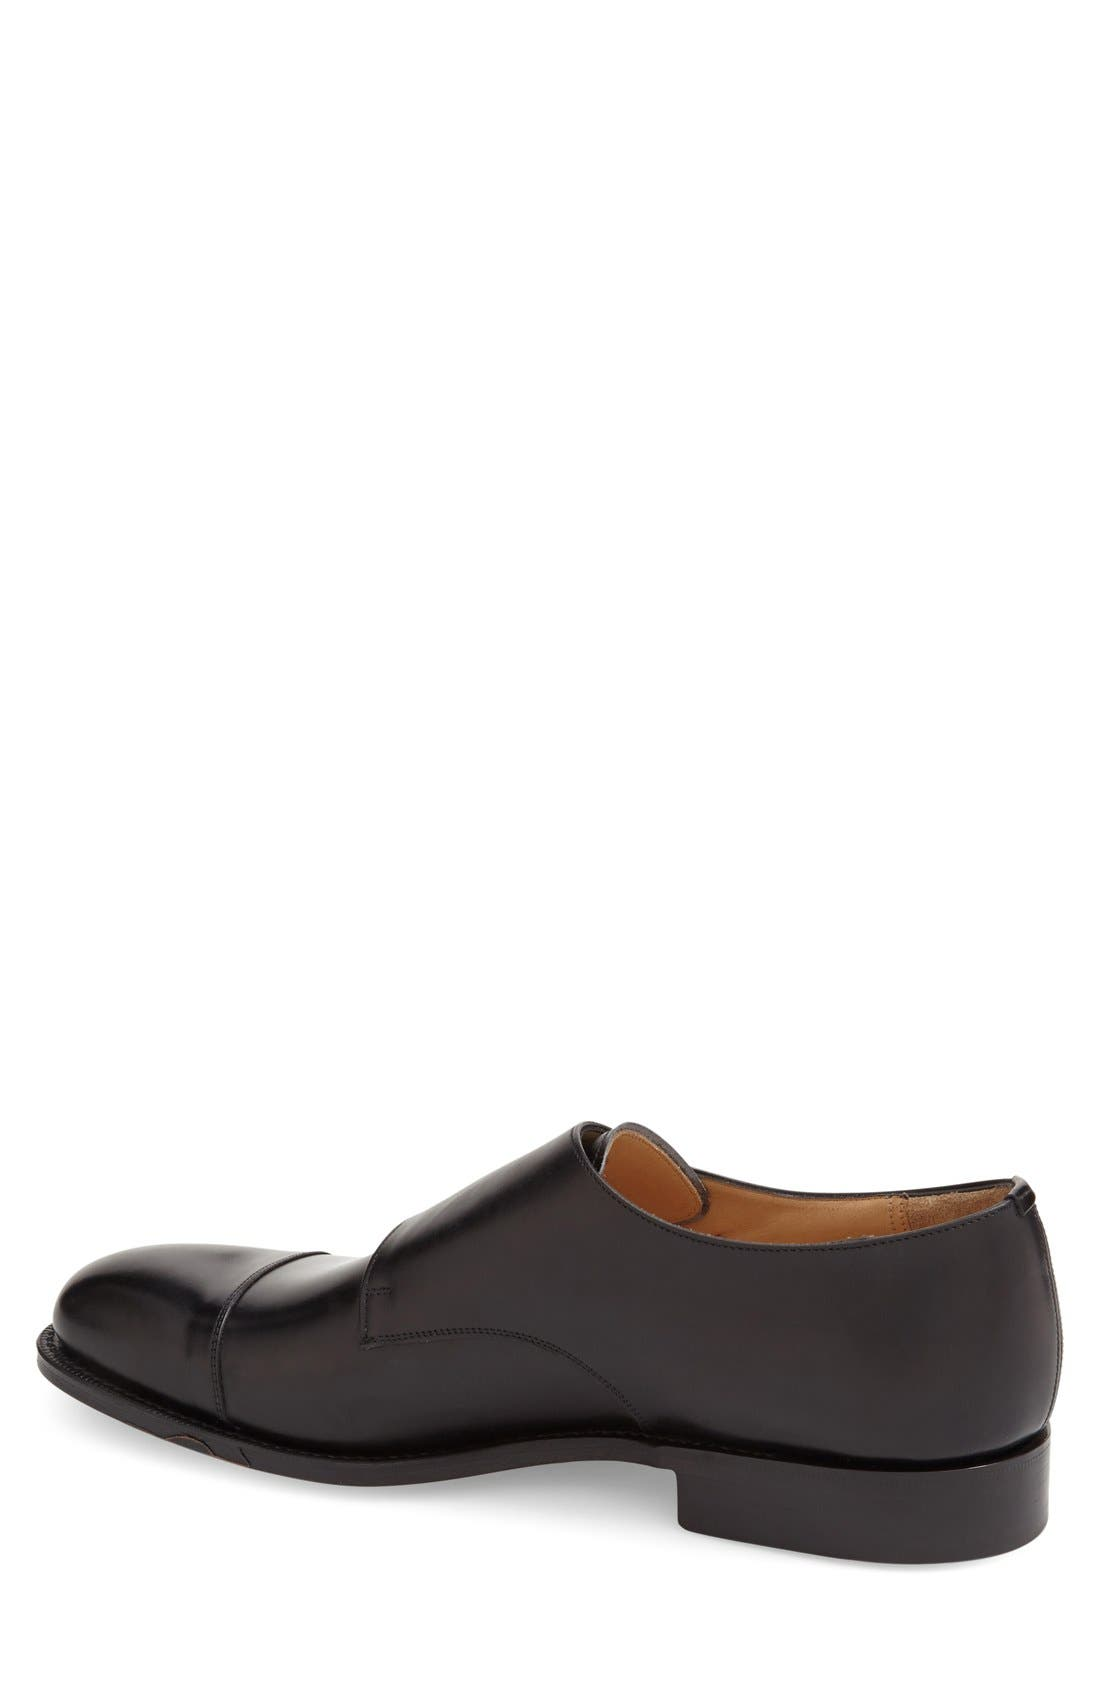 Alternate Image 2  - Church's 'Cowes' Double Monk Strap Shoe (Men)